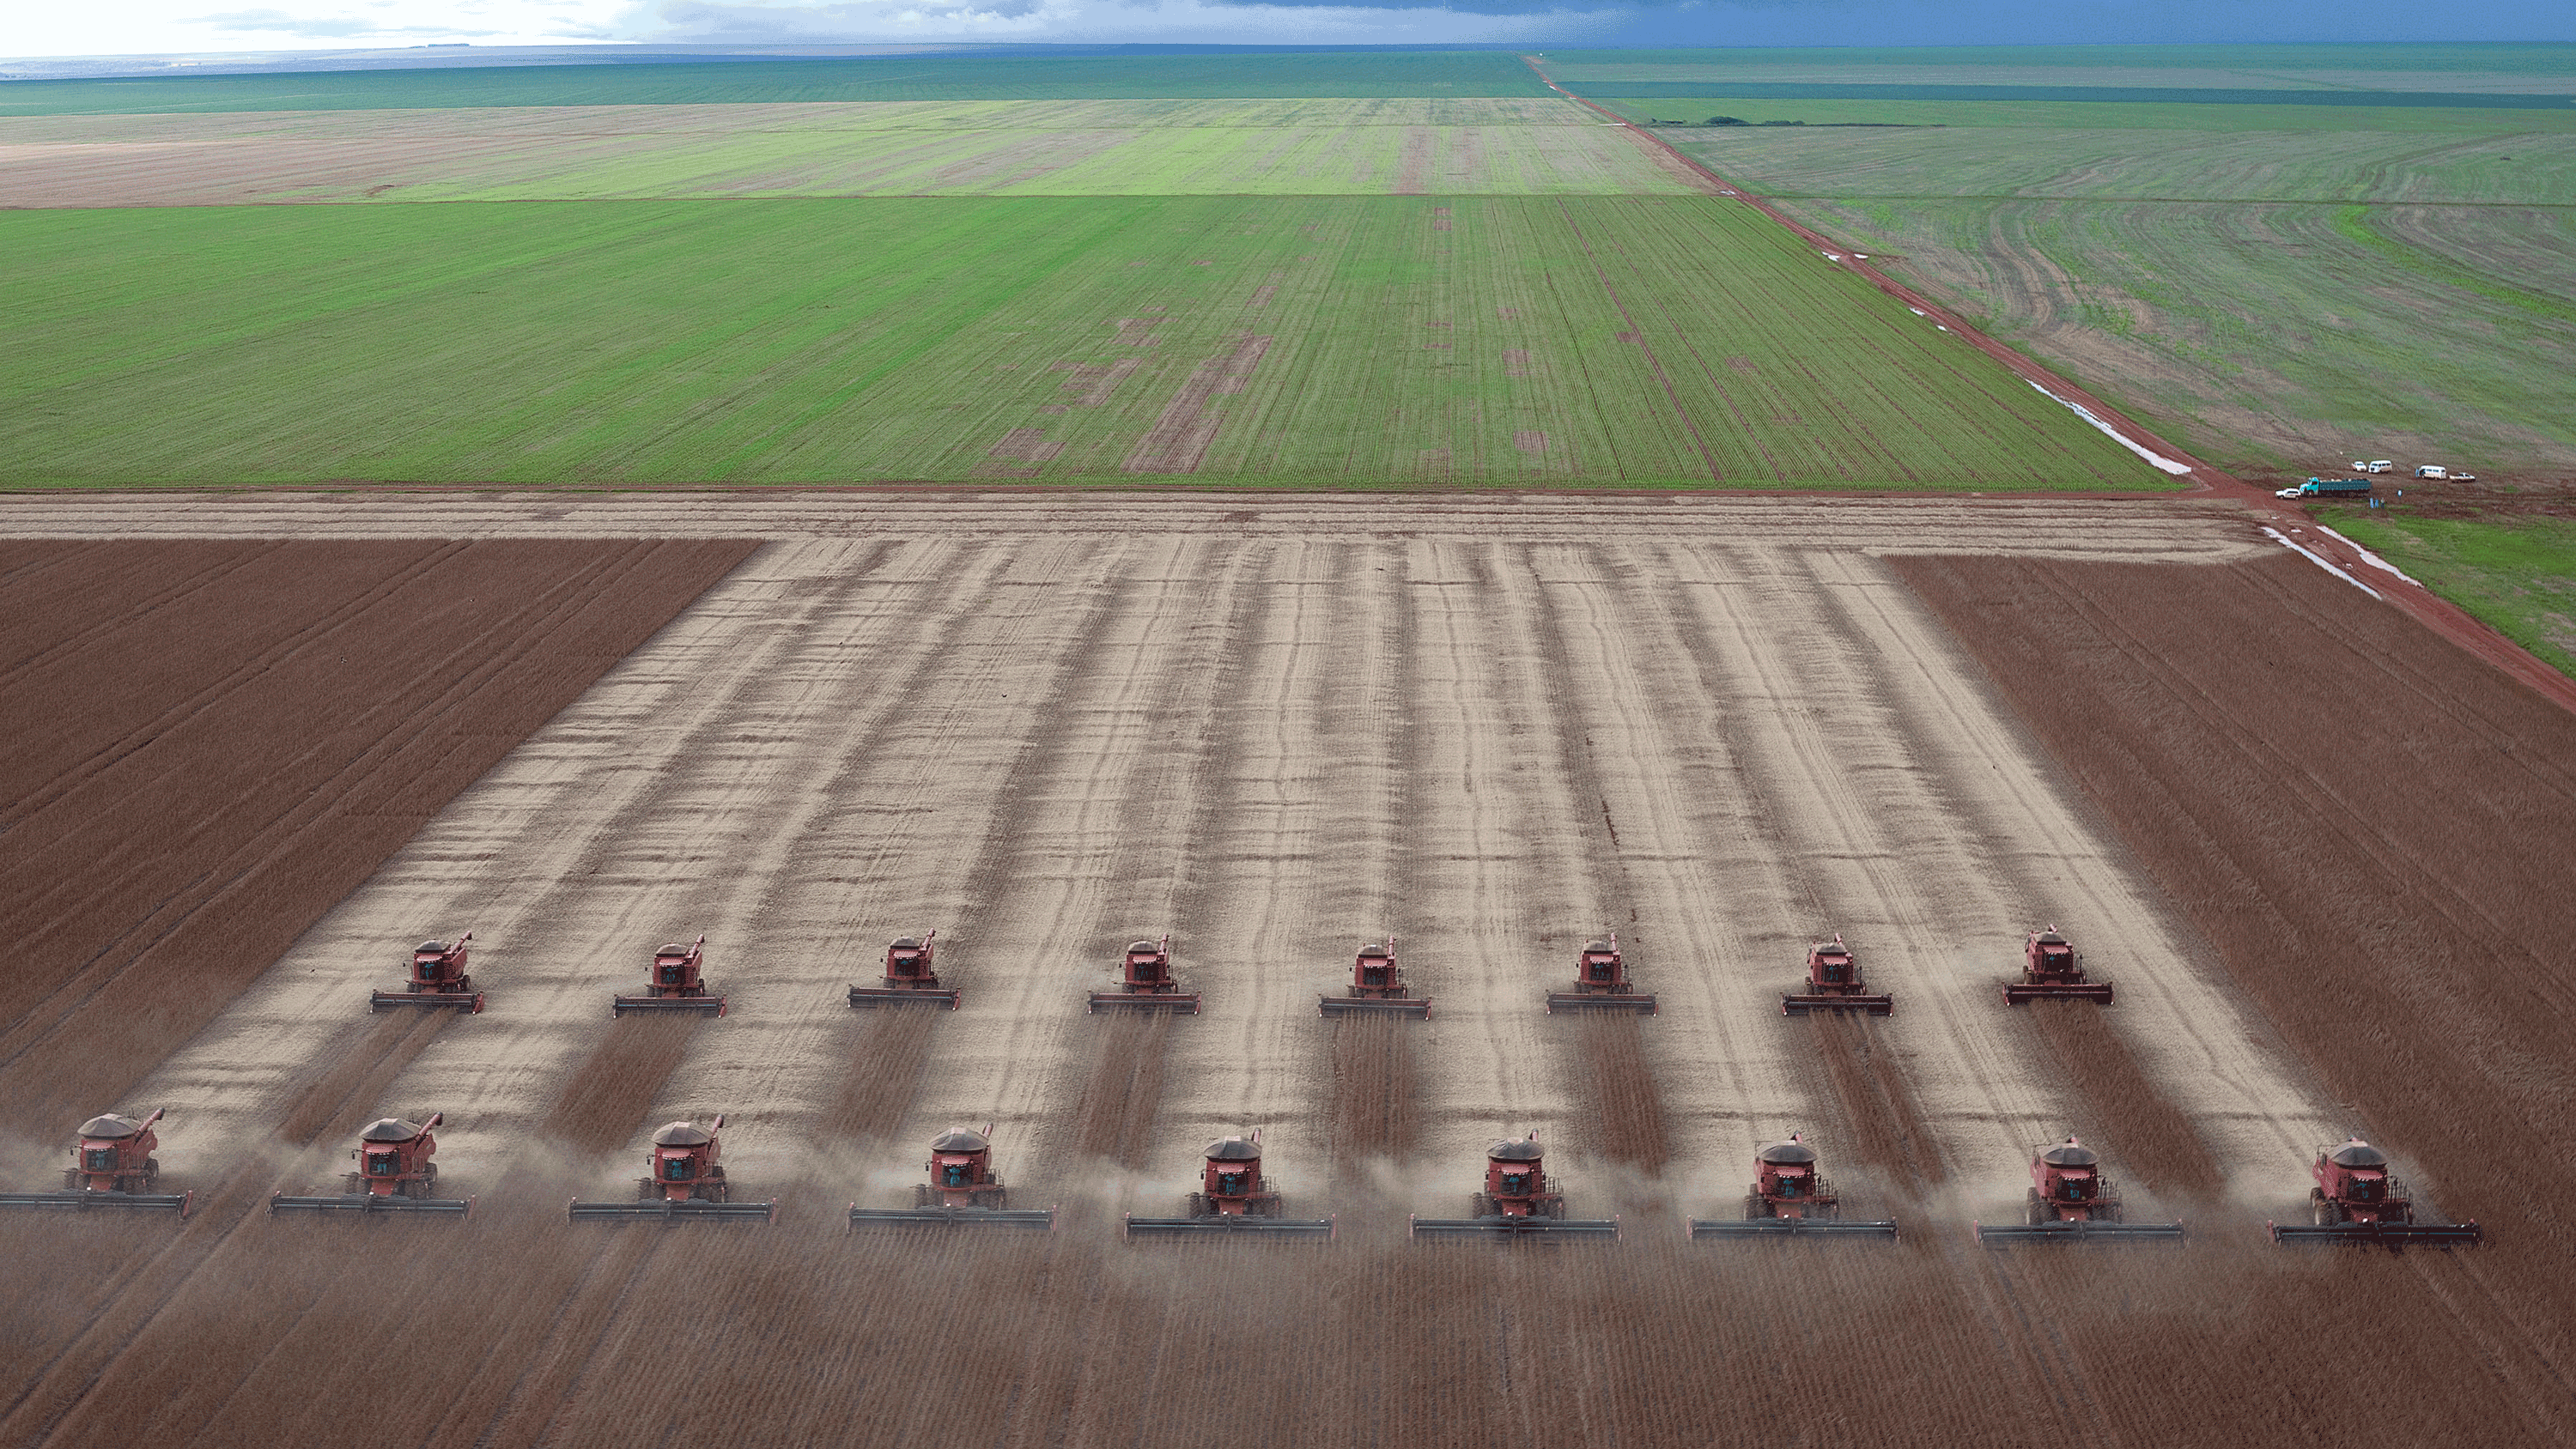 An aerial photograph of 18 tractors reaping a soybean field